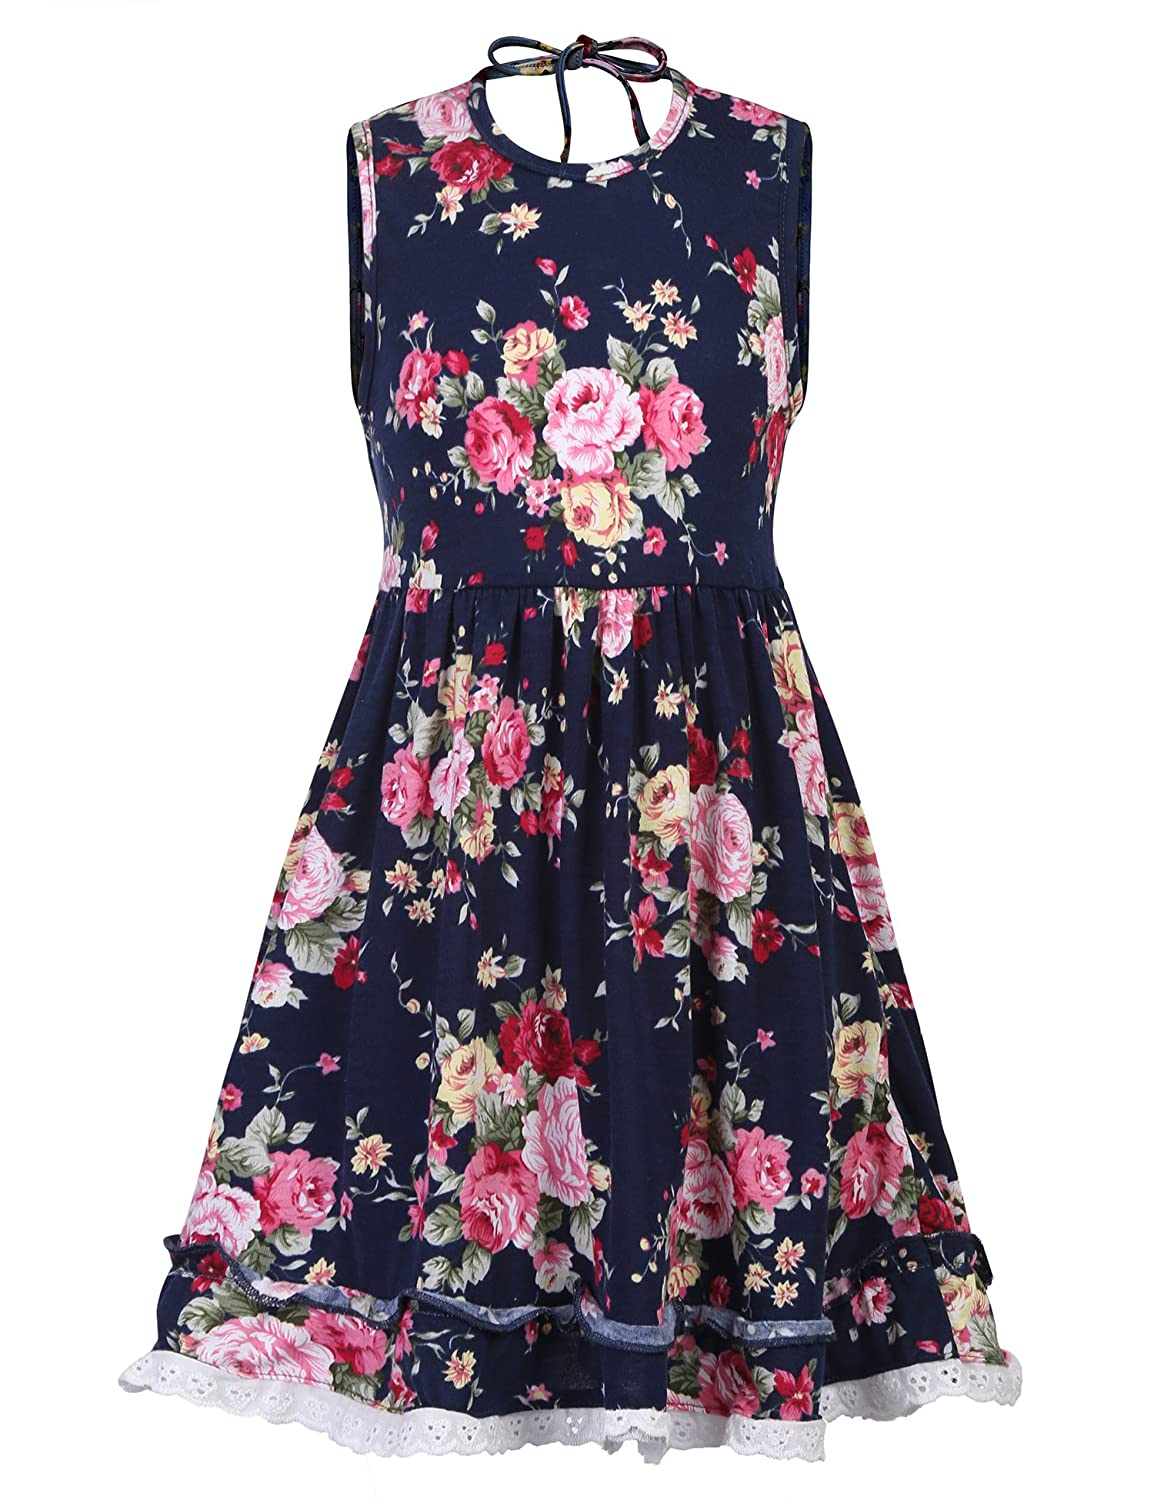 017b50d62bf The cute dress suits 3-11 years old kids. Casual summer ruffle swing hem  lace patchwork dresses for kids